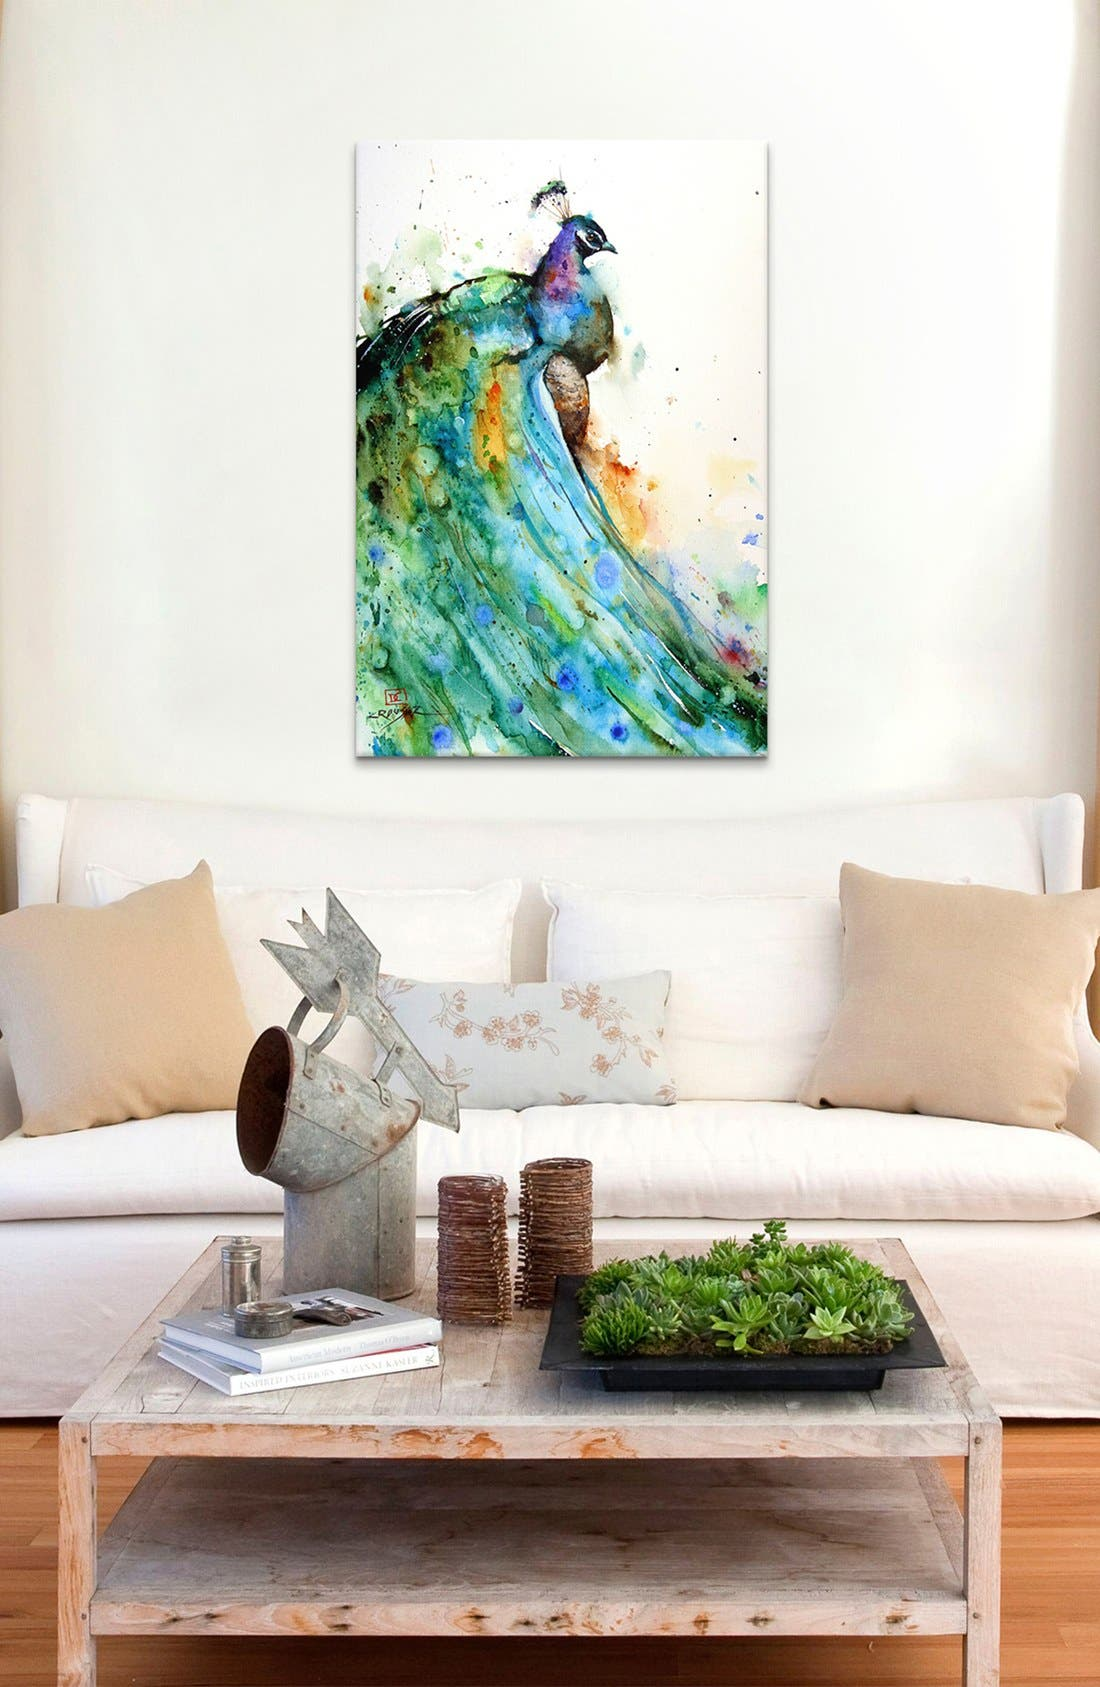 'Peacock - Dean Crouser' Giclée Print Canvas Art,                             Alternate thumbnail 2, color,                             White